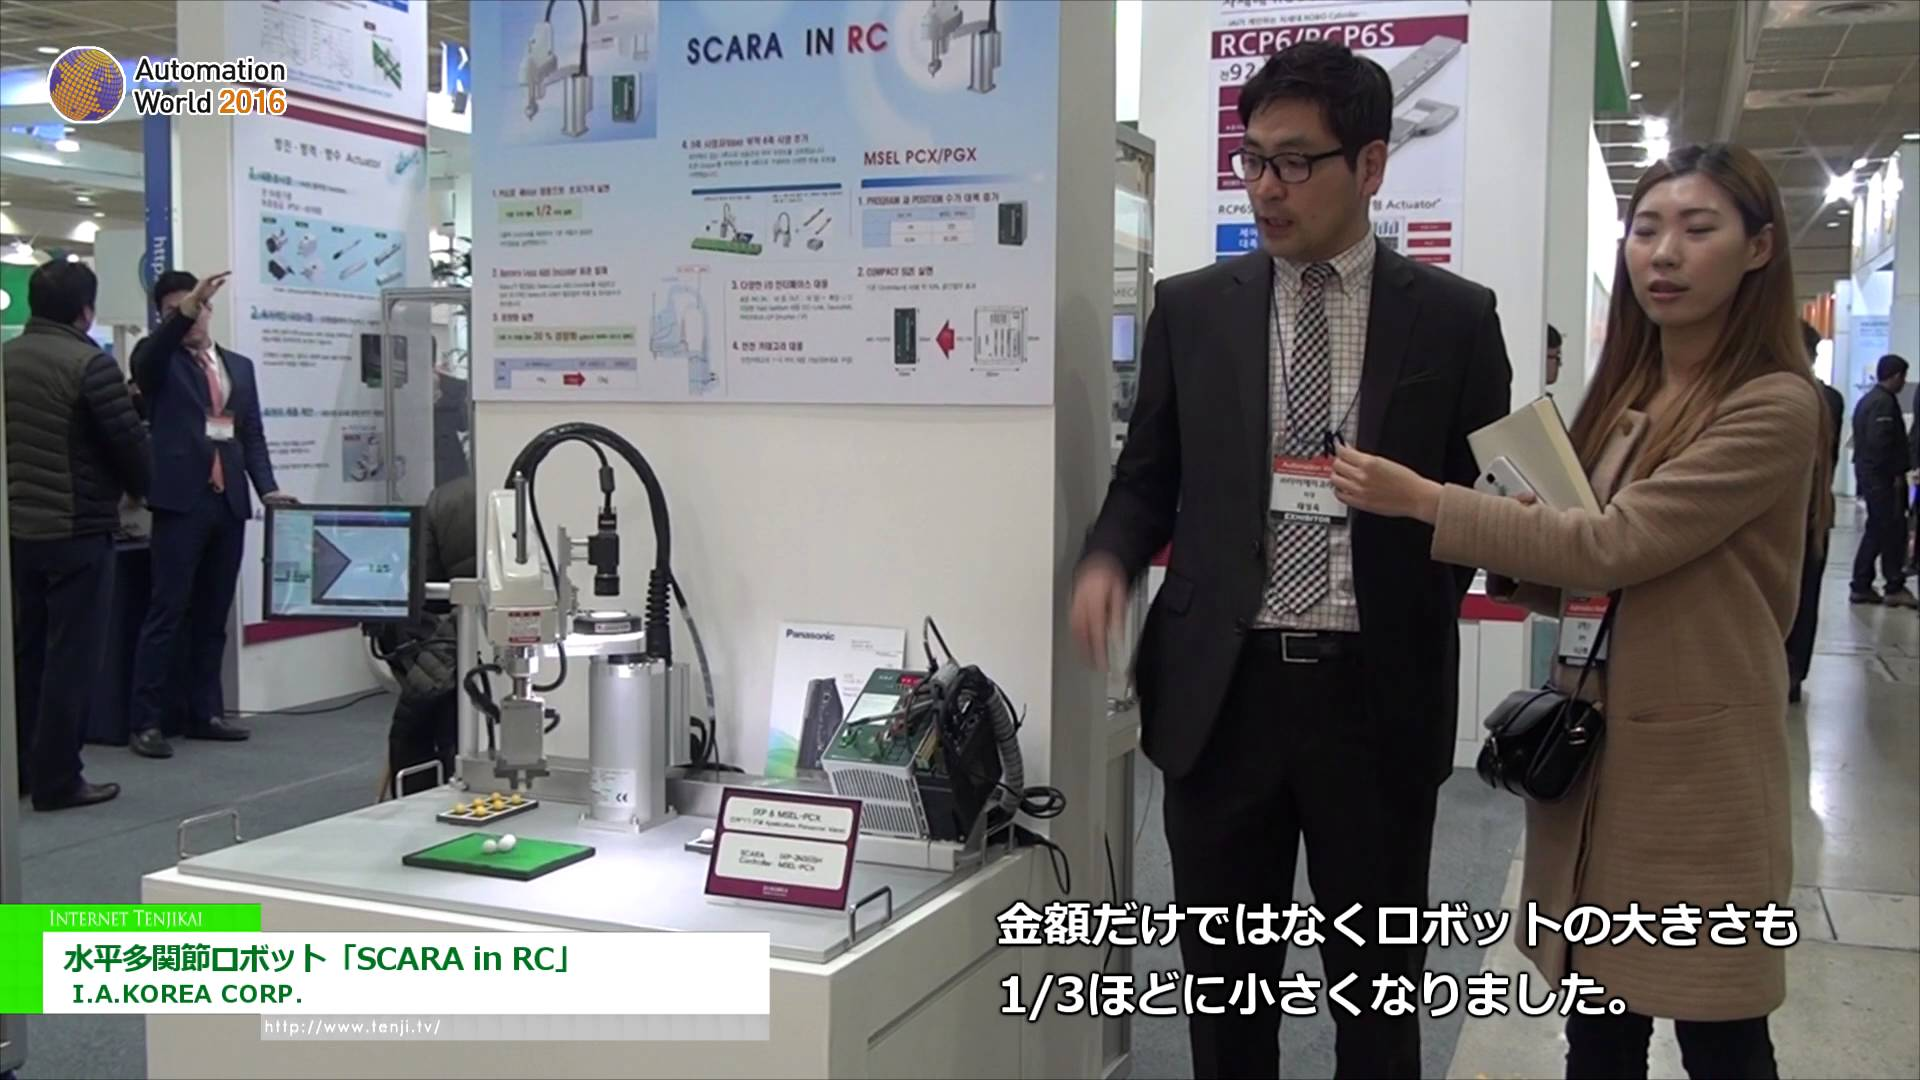 [Automation World 2016] ​水平多関節ロボット「SCARA in RC」 – I.A.KOREA CORP.